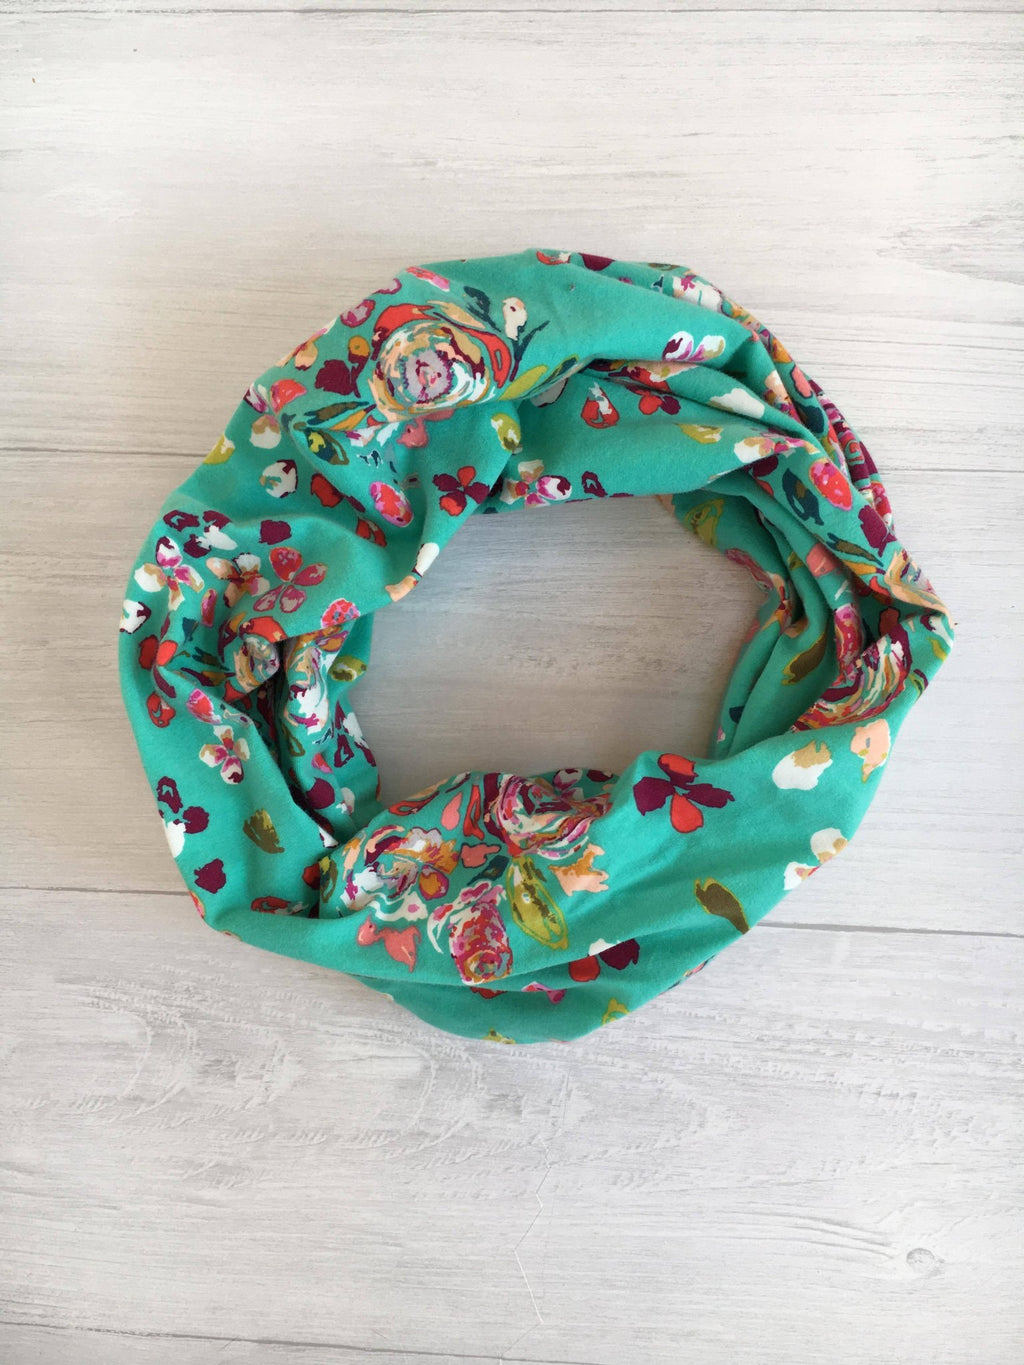 Painted Teal Infinity Scarf